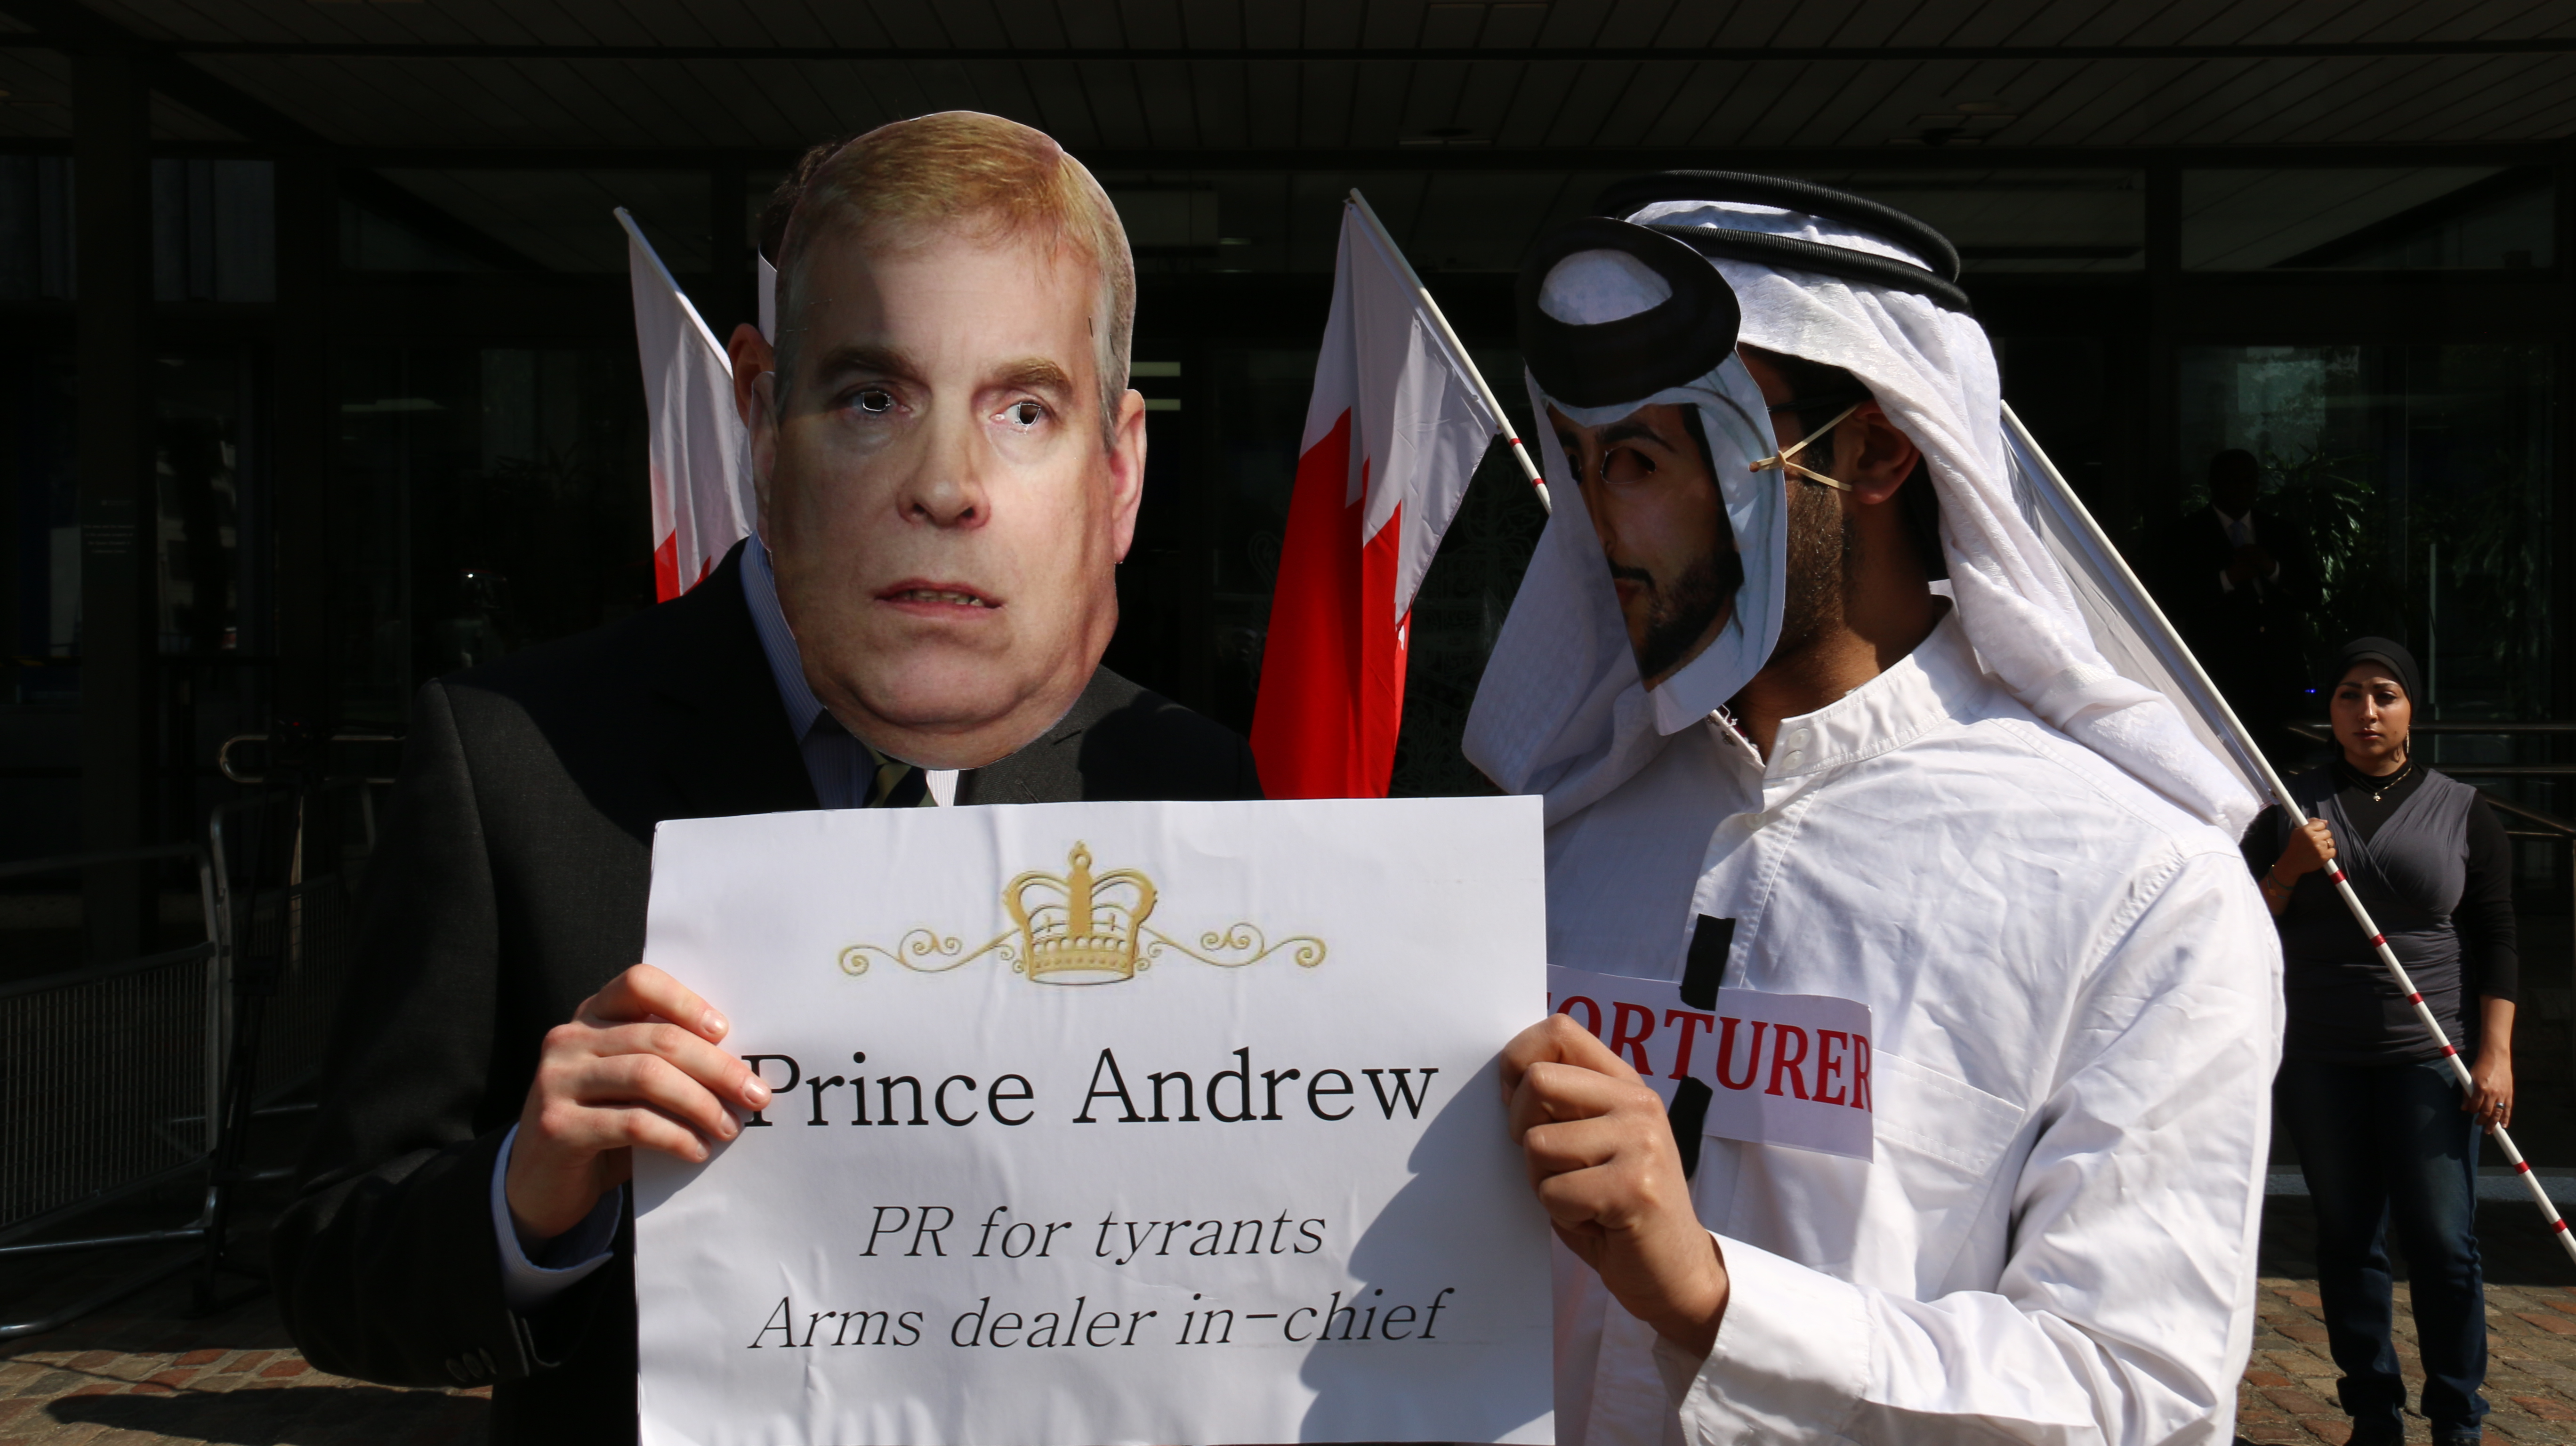 During the protests, activists wore masks of Prince Andrew and Nasser Bin Hamad and acted out a citizens arrest on the figure dressed as Nasser